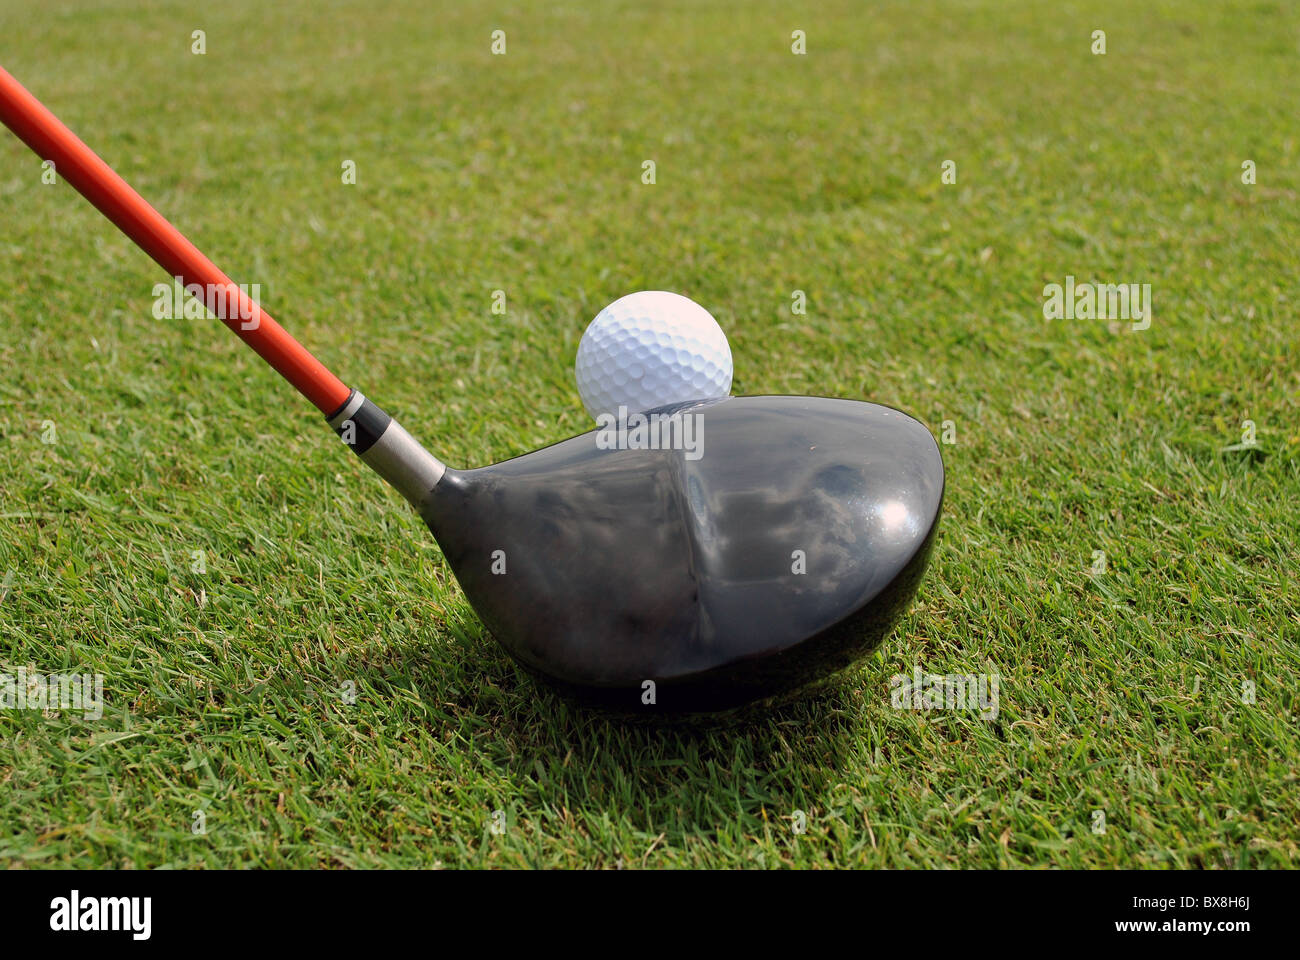 teeing off - Stock Image